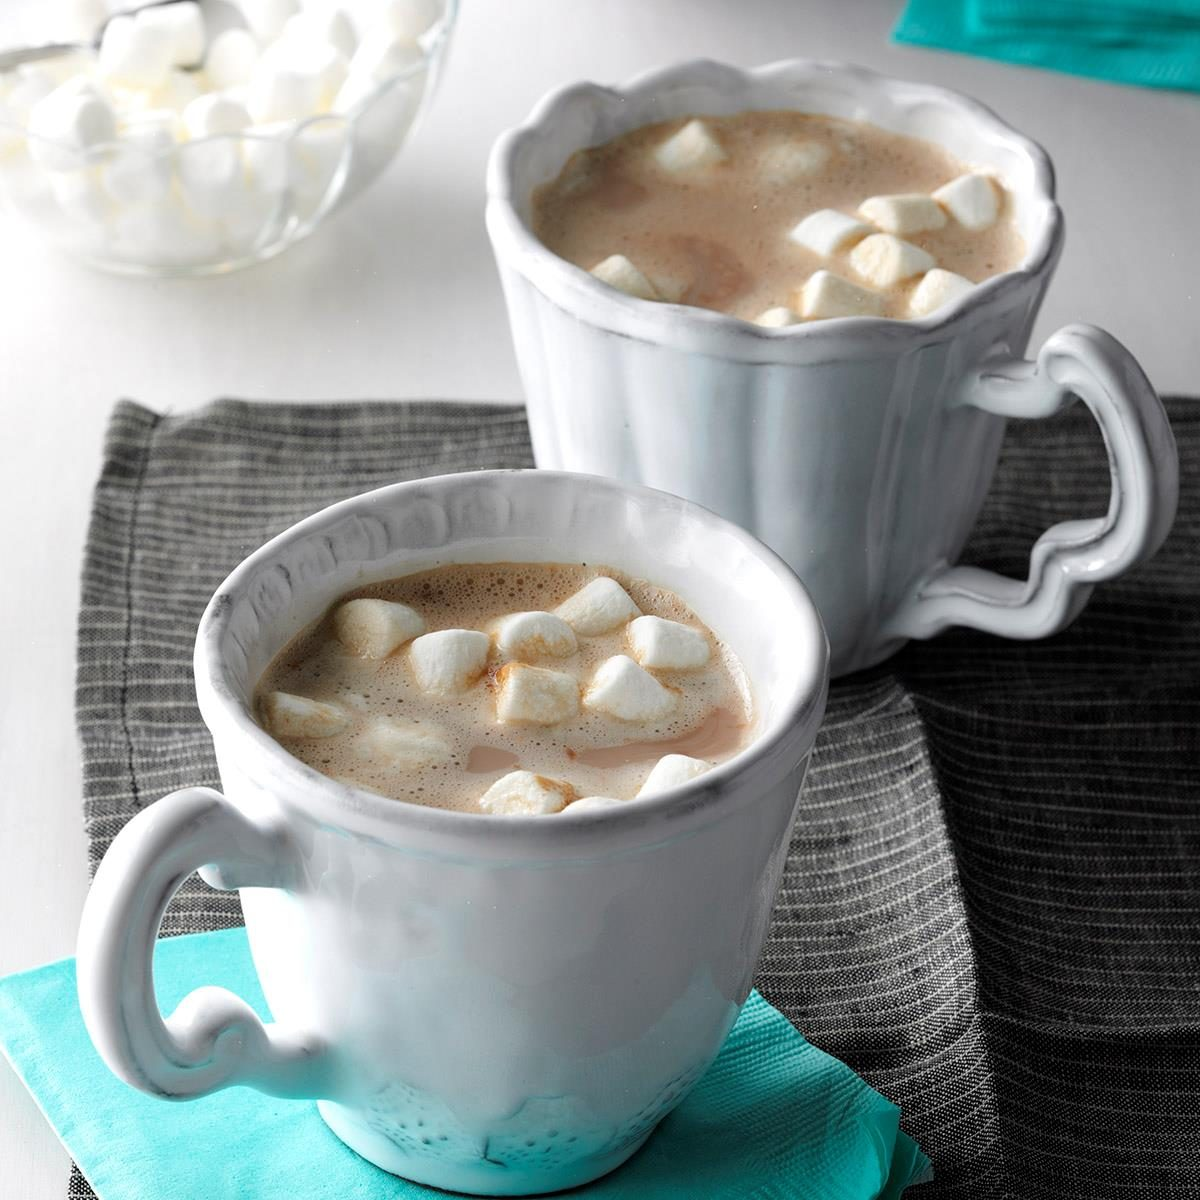 Healthy hot chocolate with marshmallows